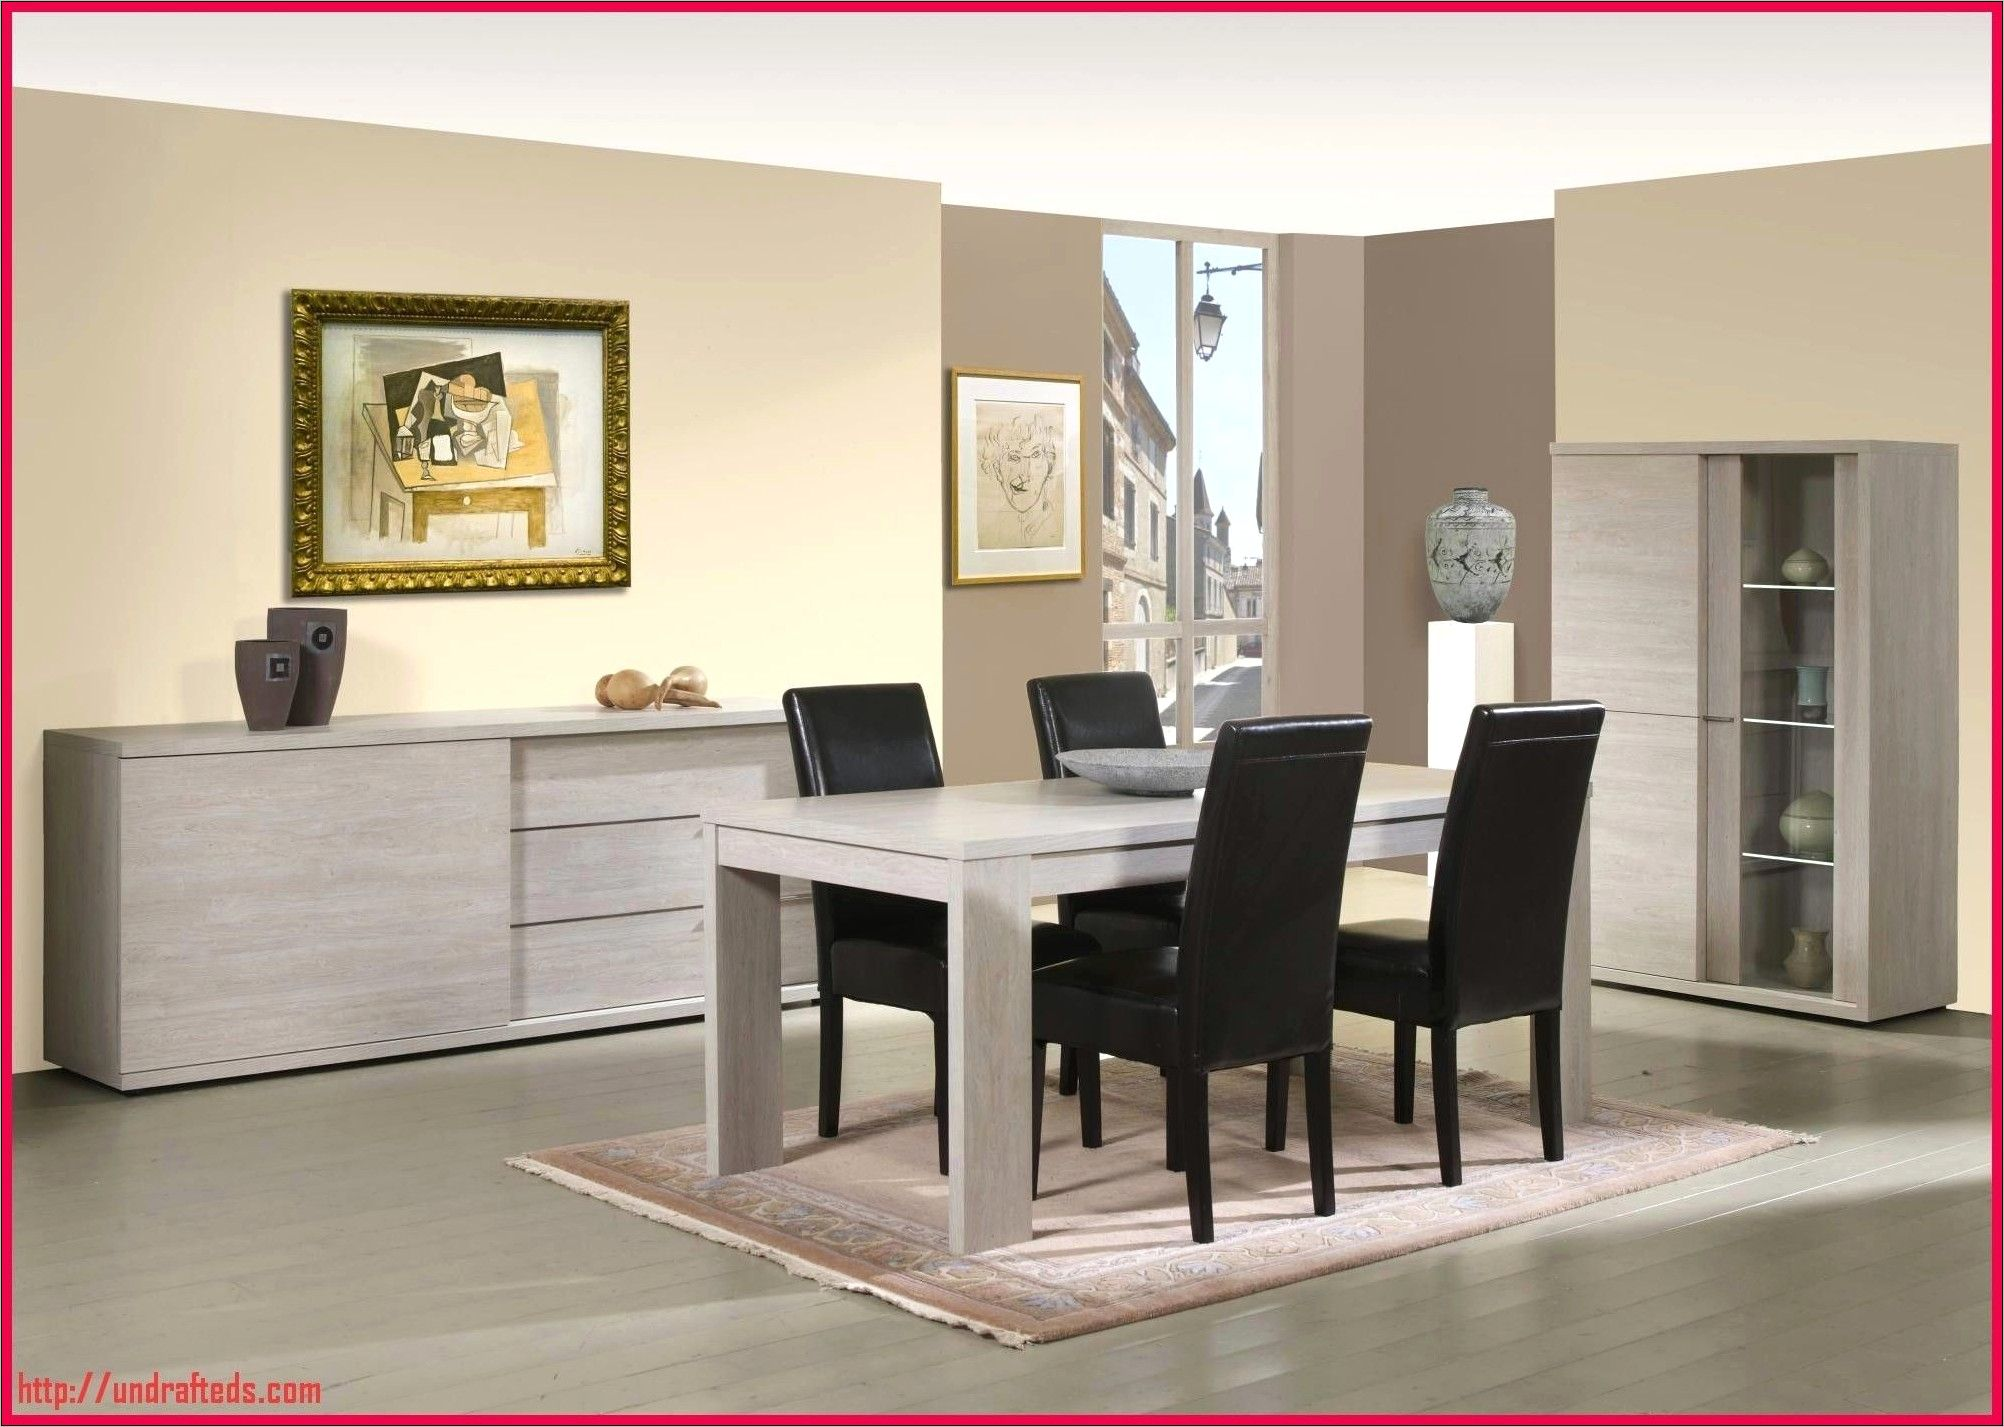 Salle A Manger Moderne Table Chaise Meuble Bas Conforama In 2020 Kitchen Furniture Dining Furniture